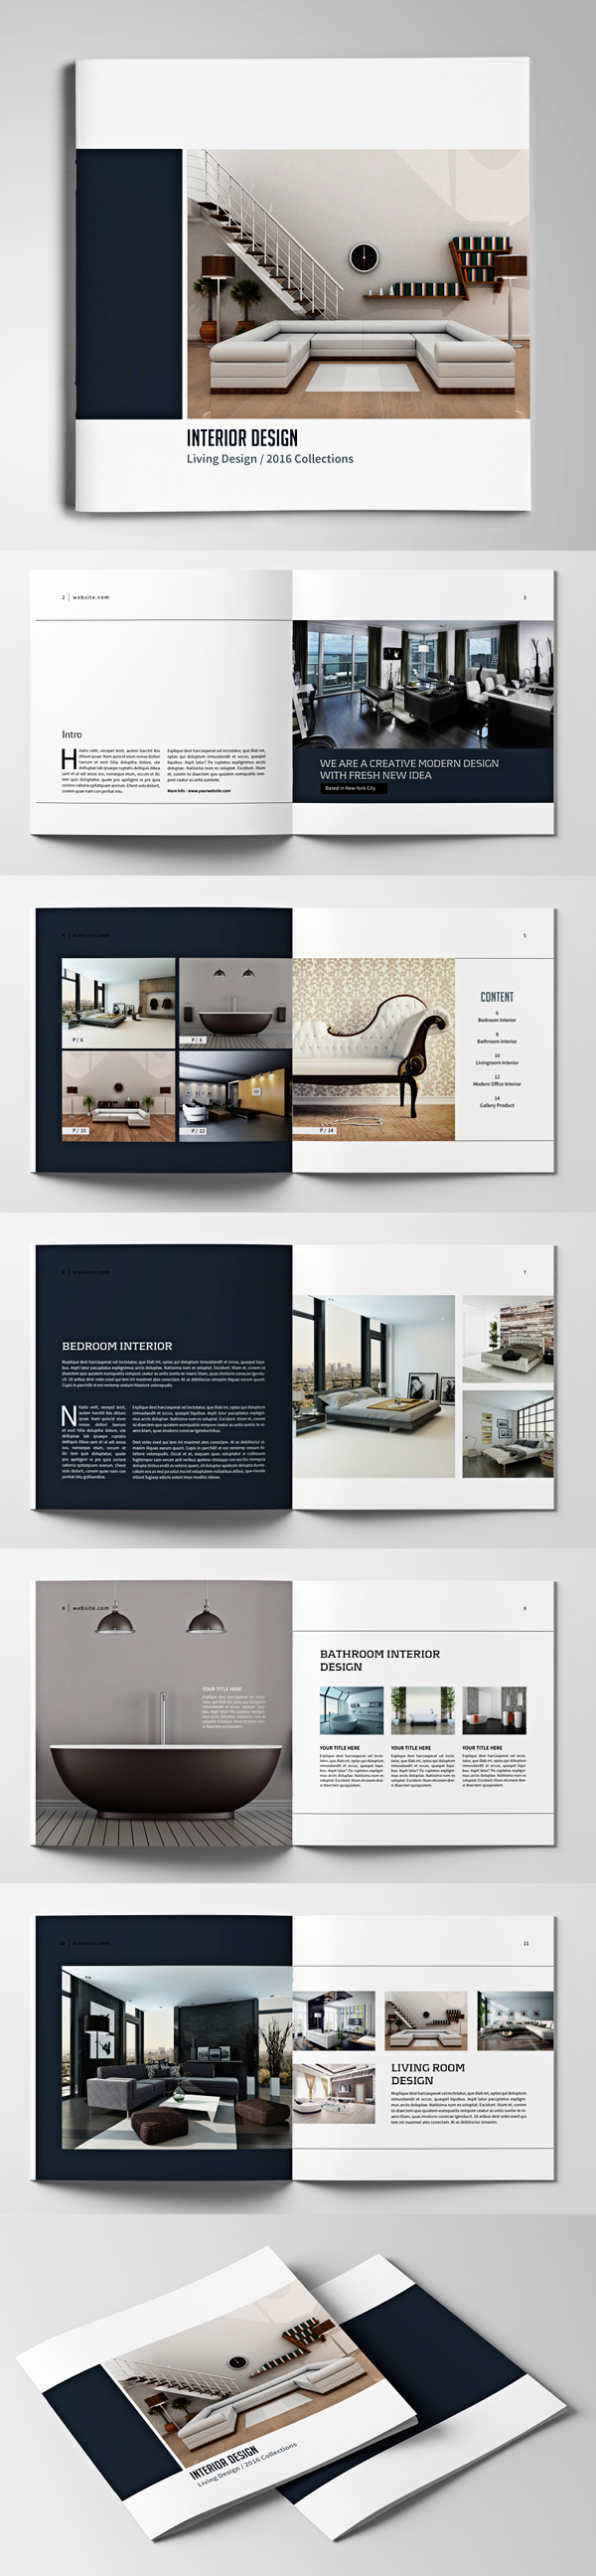 100 Professional Corporate Brochure Templates - 10